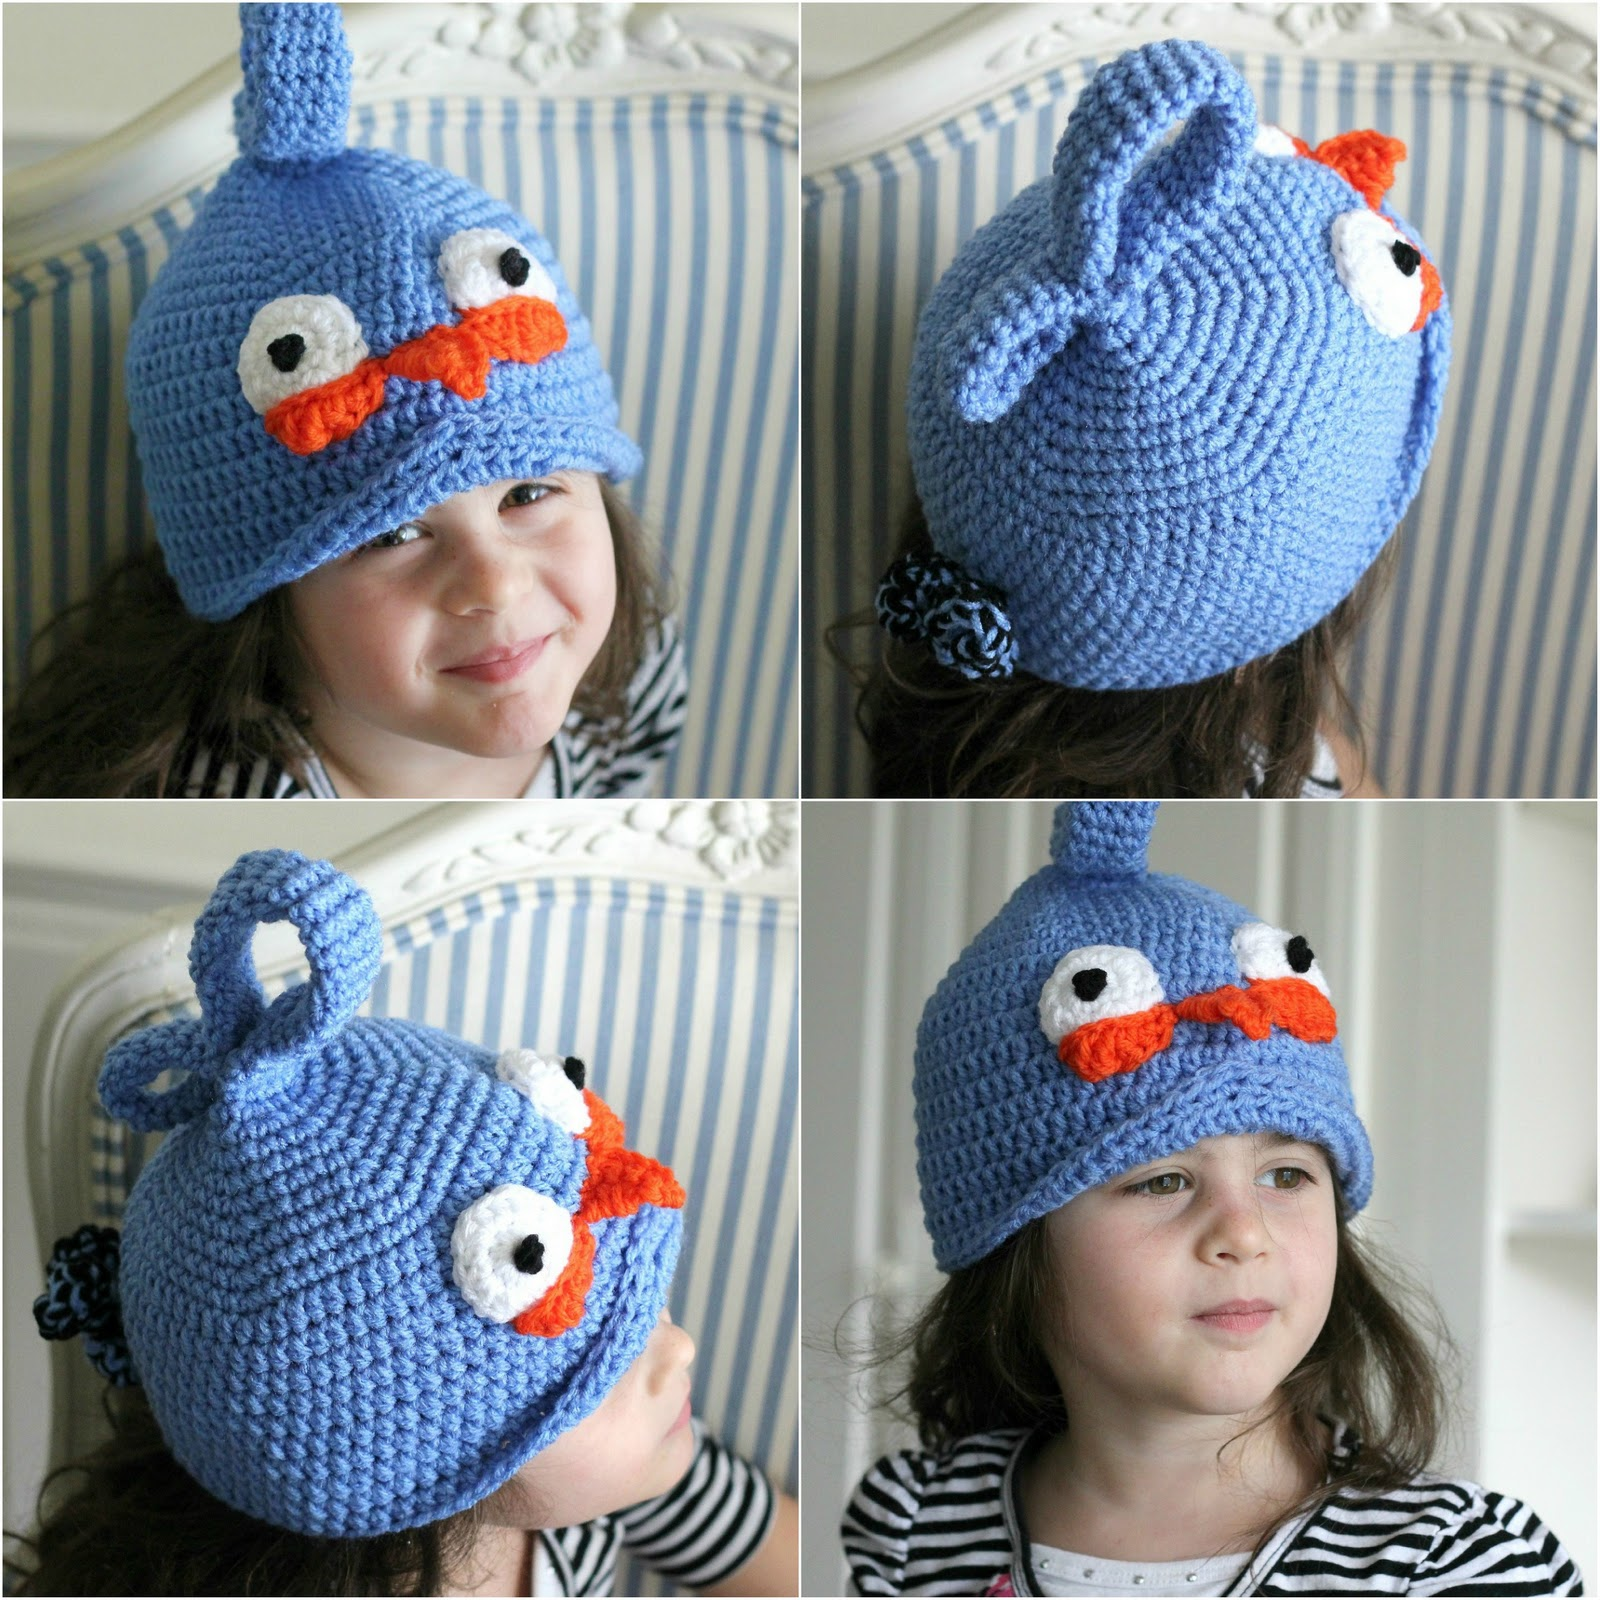 Crochet Hat Pattern Angry Bird : With a Grateful Prayer and a Thankful Heart: Silly Hats